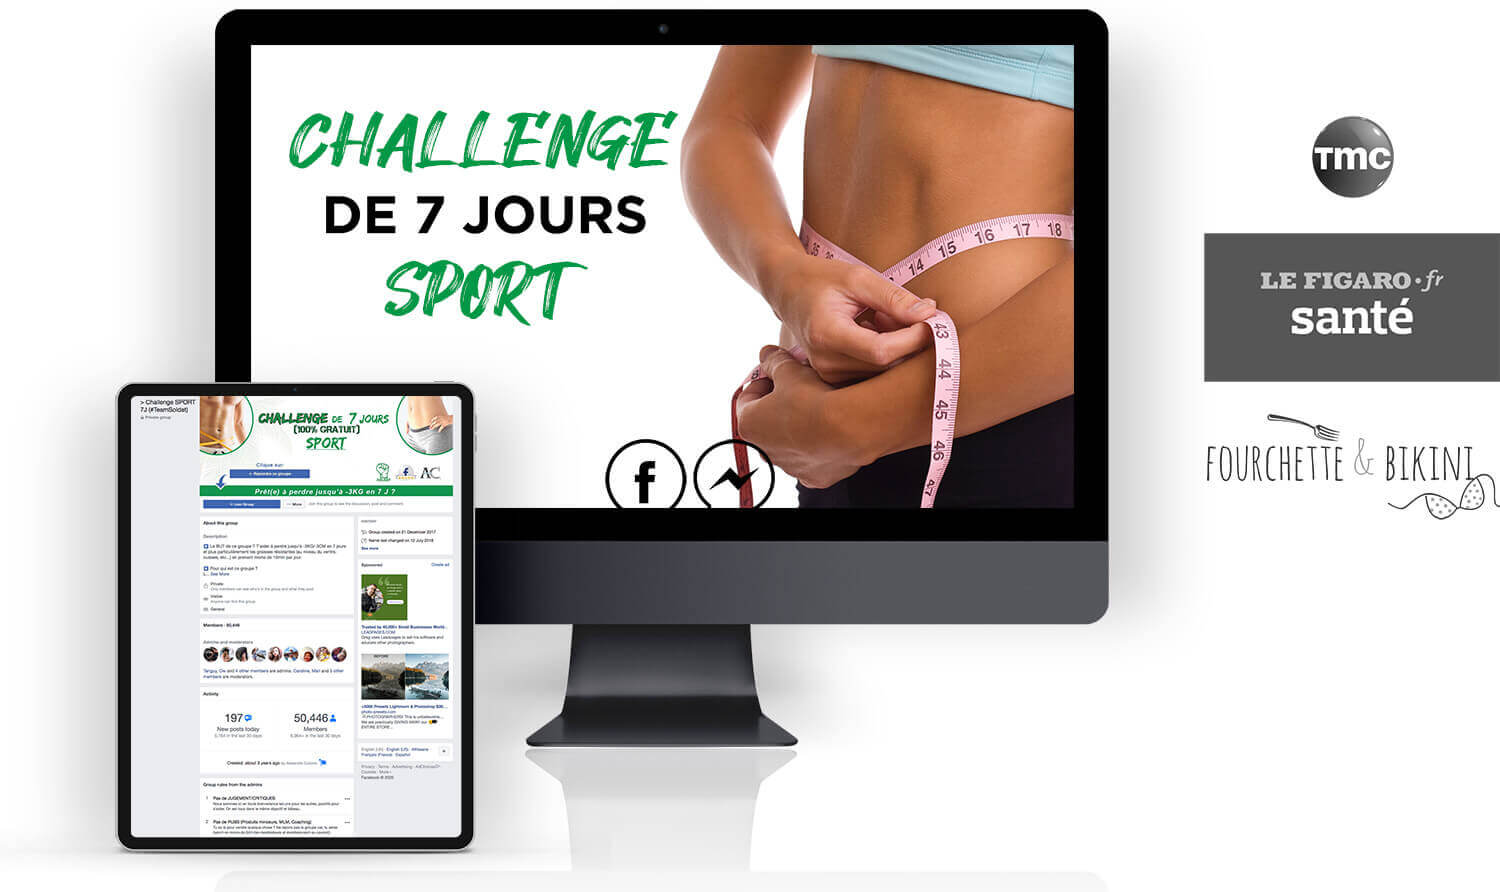 Challenge de 7 jours sport mock up